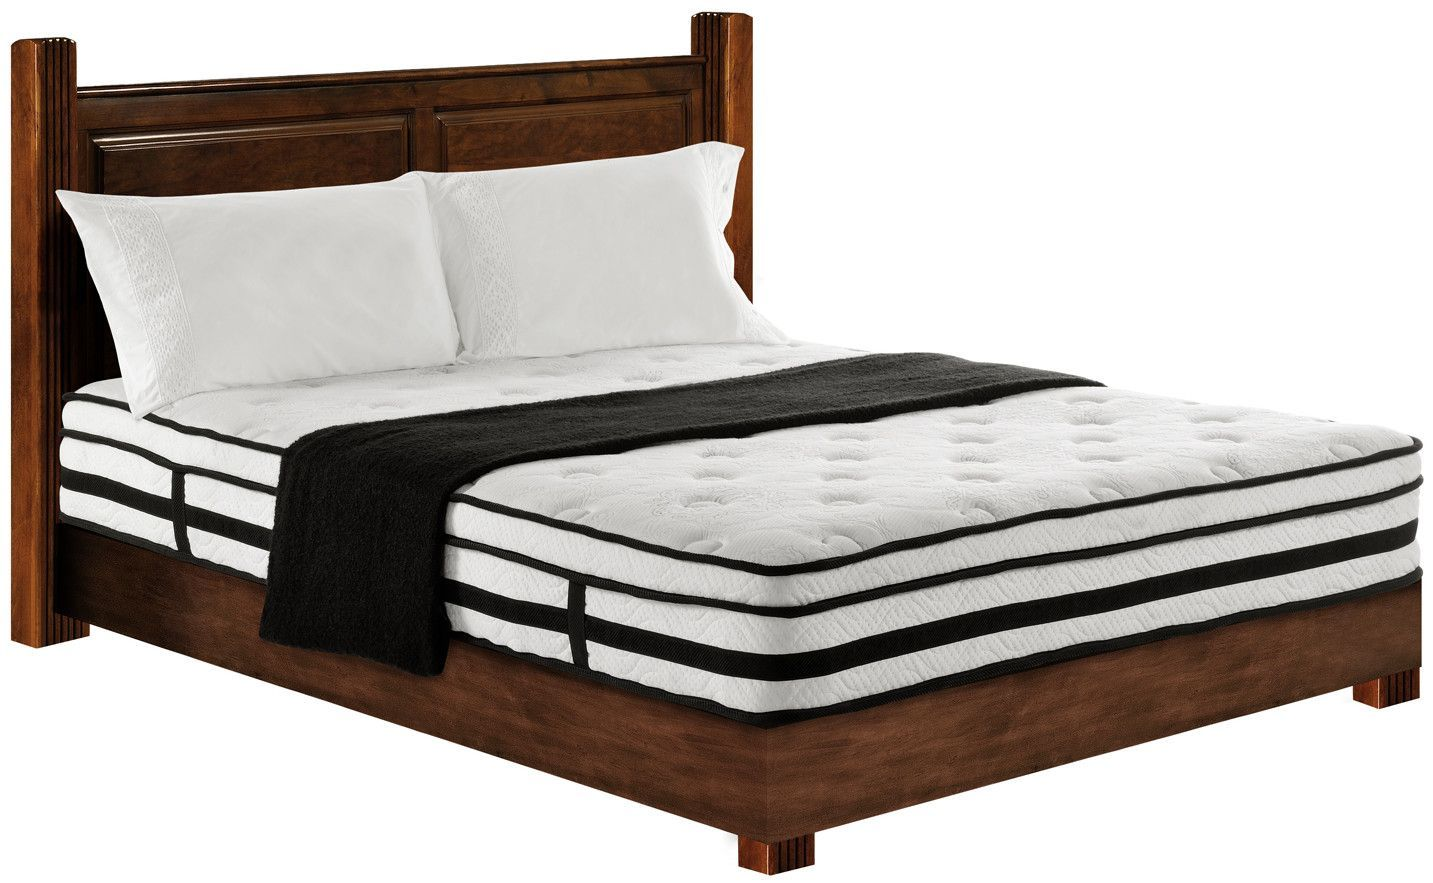 signature sleep conforma mattress independently encased coils 5 zone